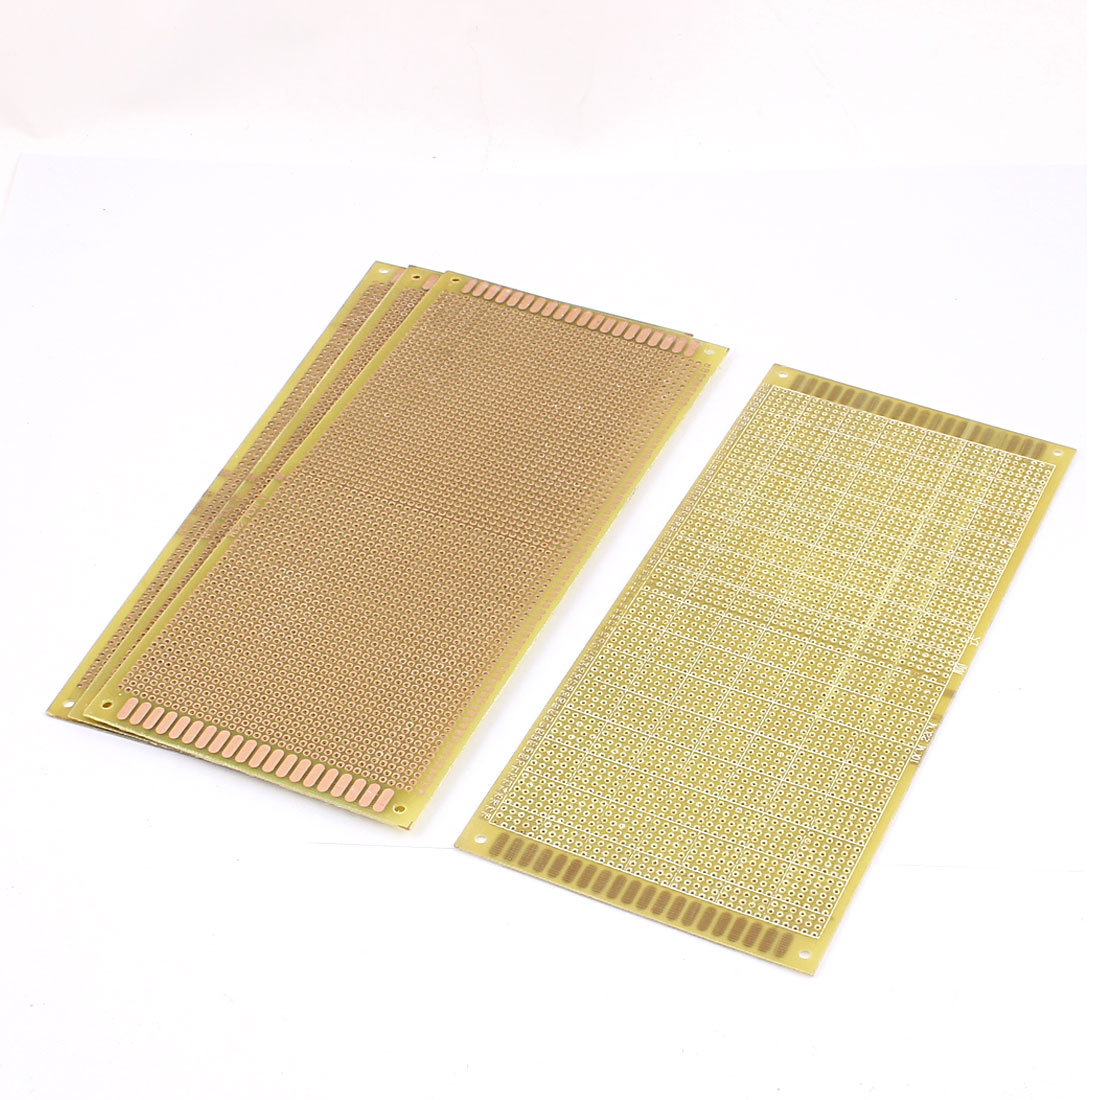 4Pcs 10cm x 22cm Electronic DIY Prototype Paper Single Side PCB Universal Board